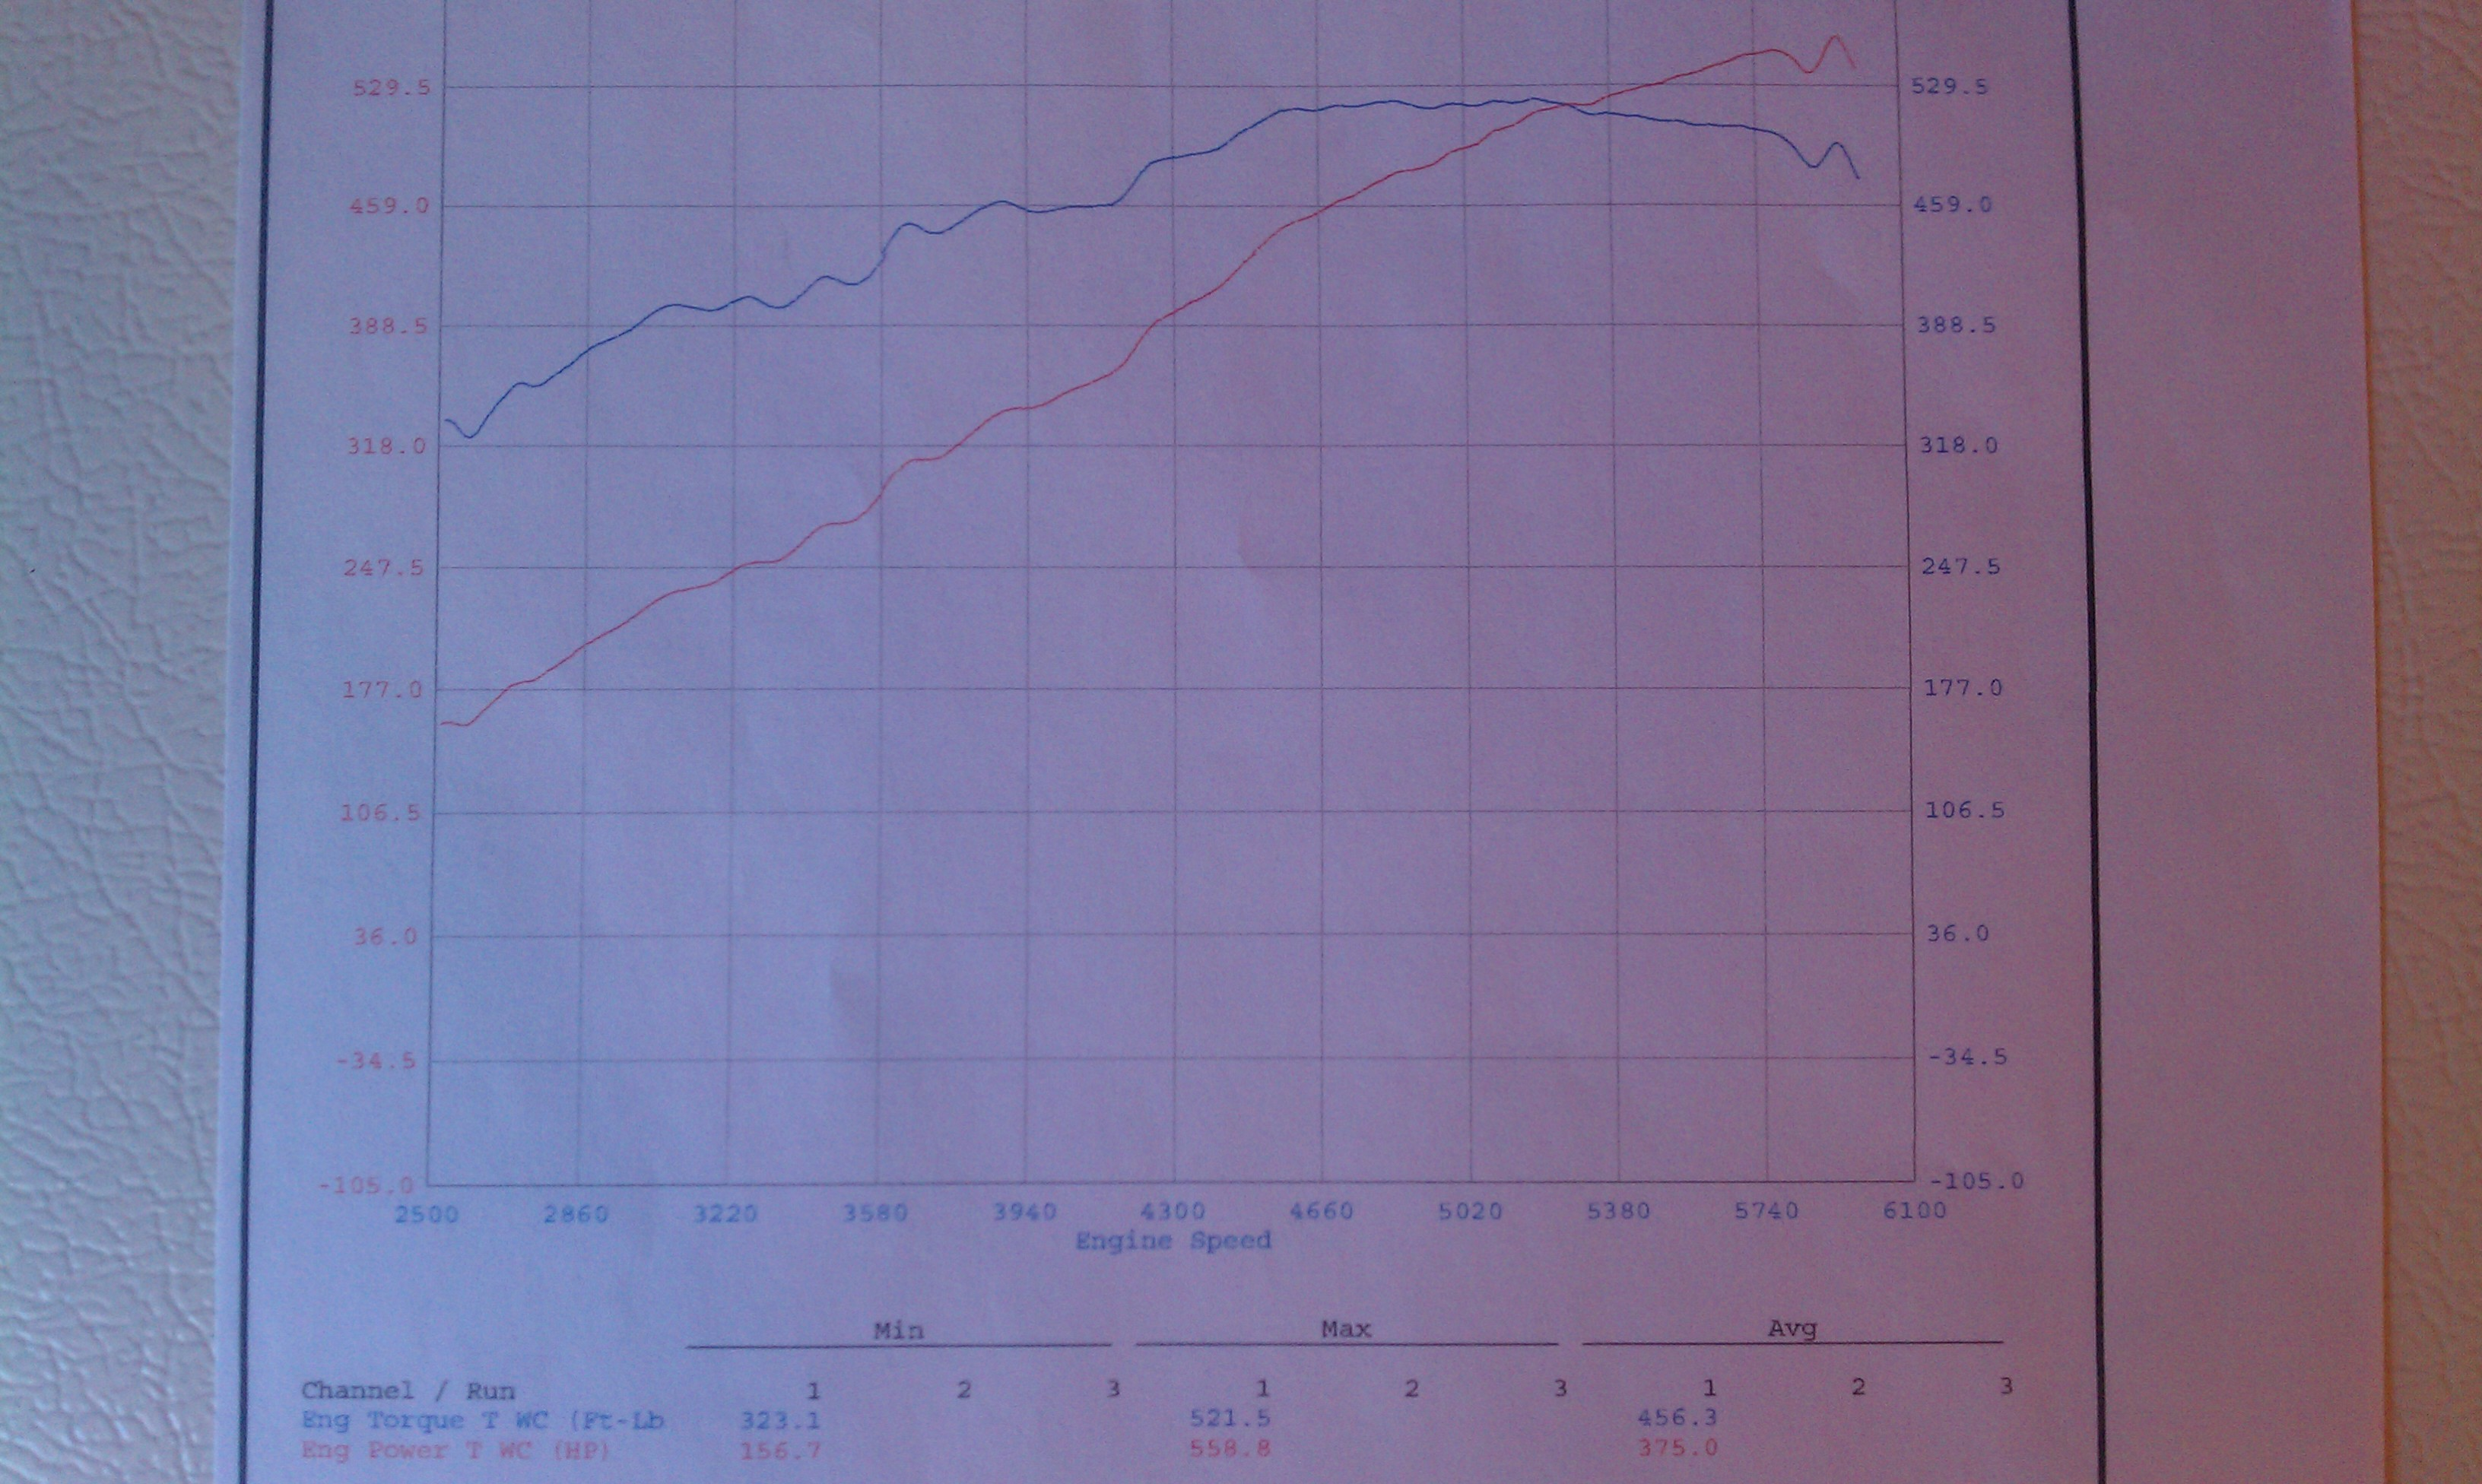 Jeep Cherokee SRT8 Dyno Graph Results